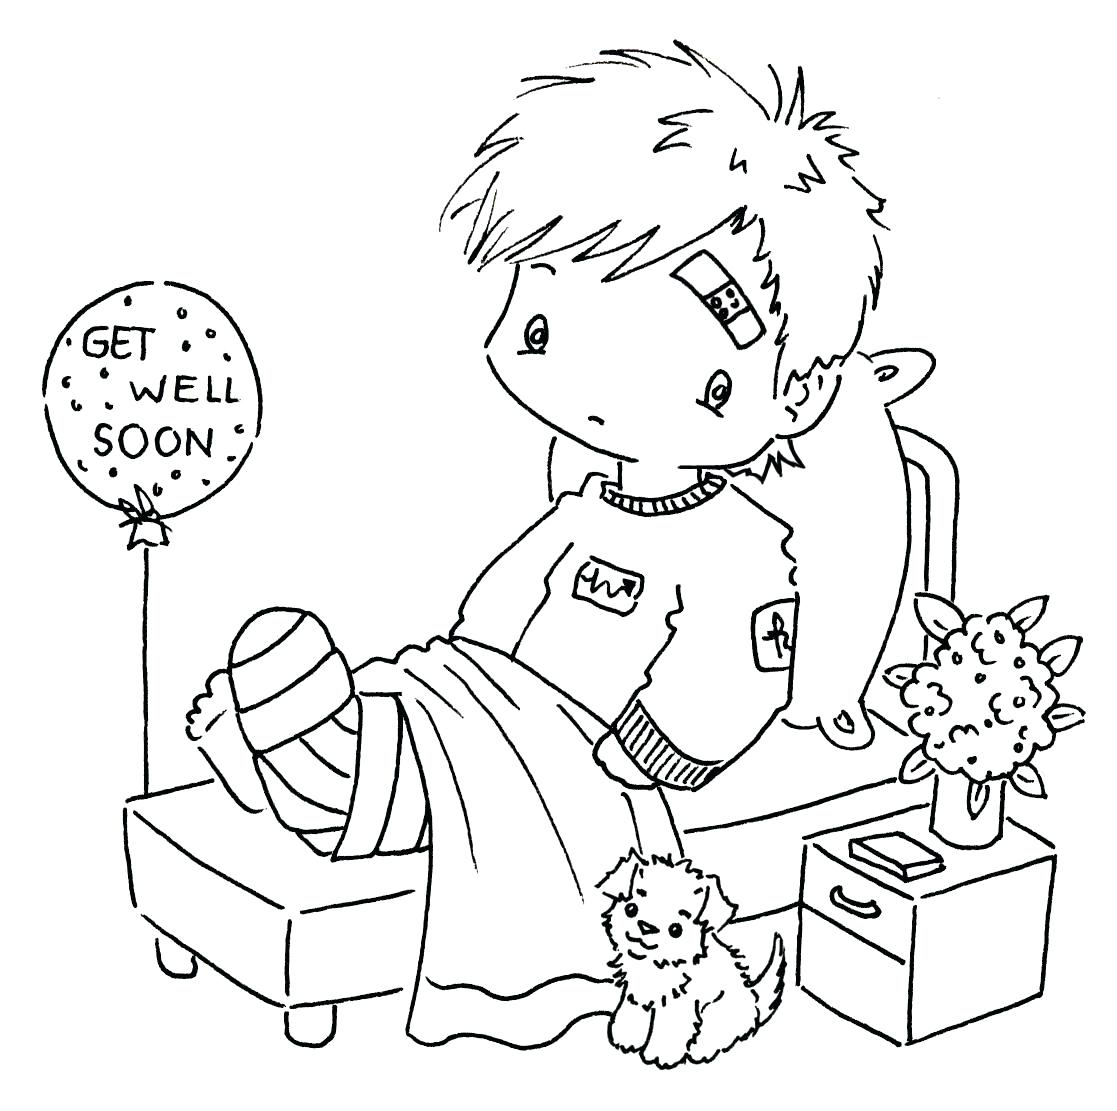 1117x1111 Soon Colouring Pages Printable Get Well Cards For Kids To Color